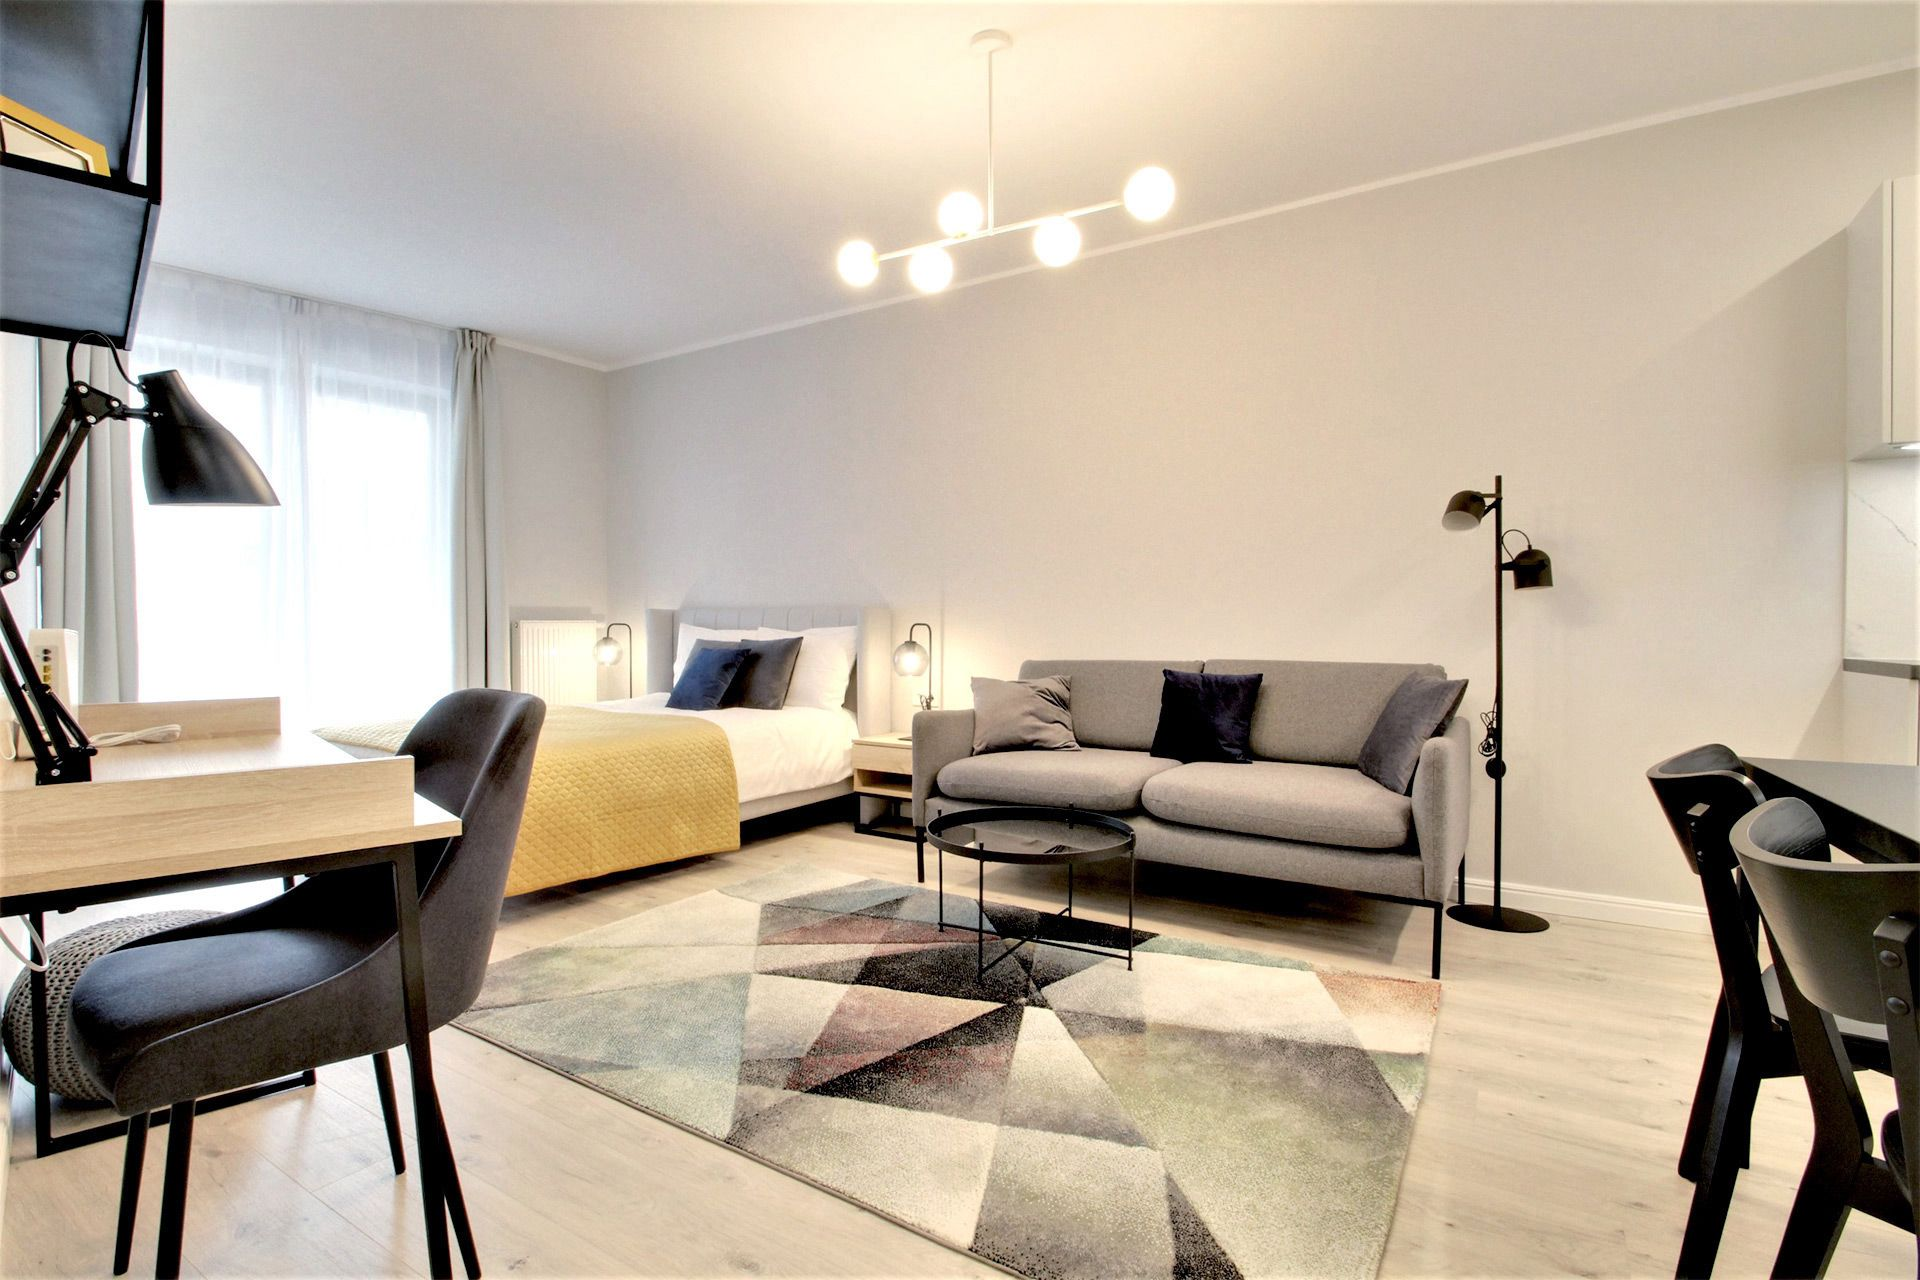 Studio - Medium apartment to rent in Warsaw UPR-A-039-2